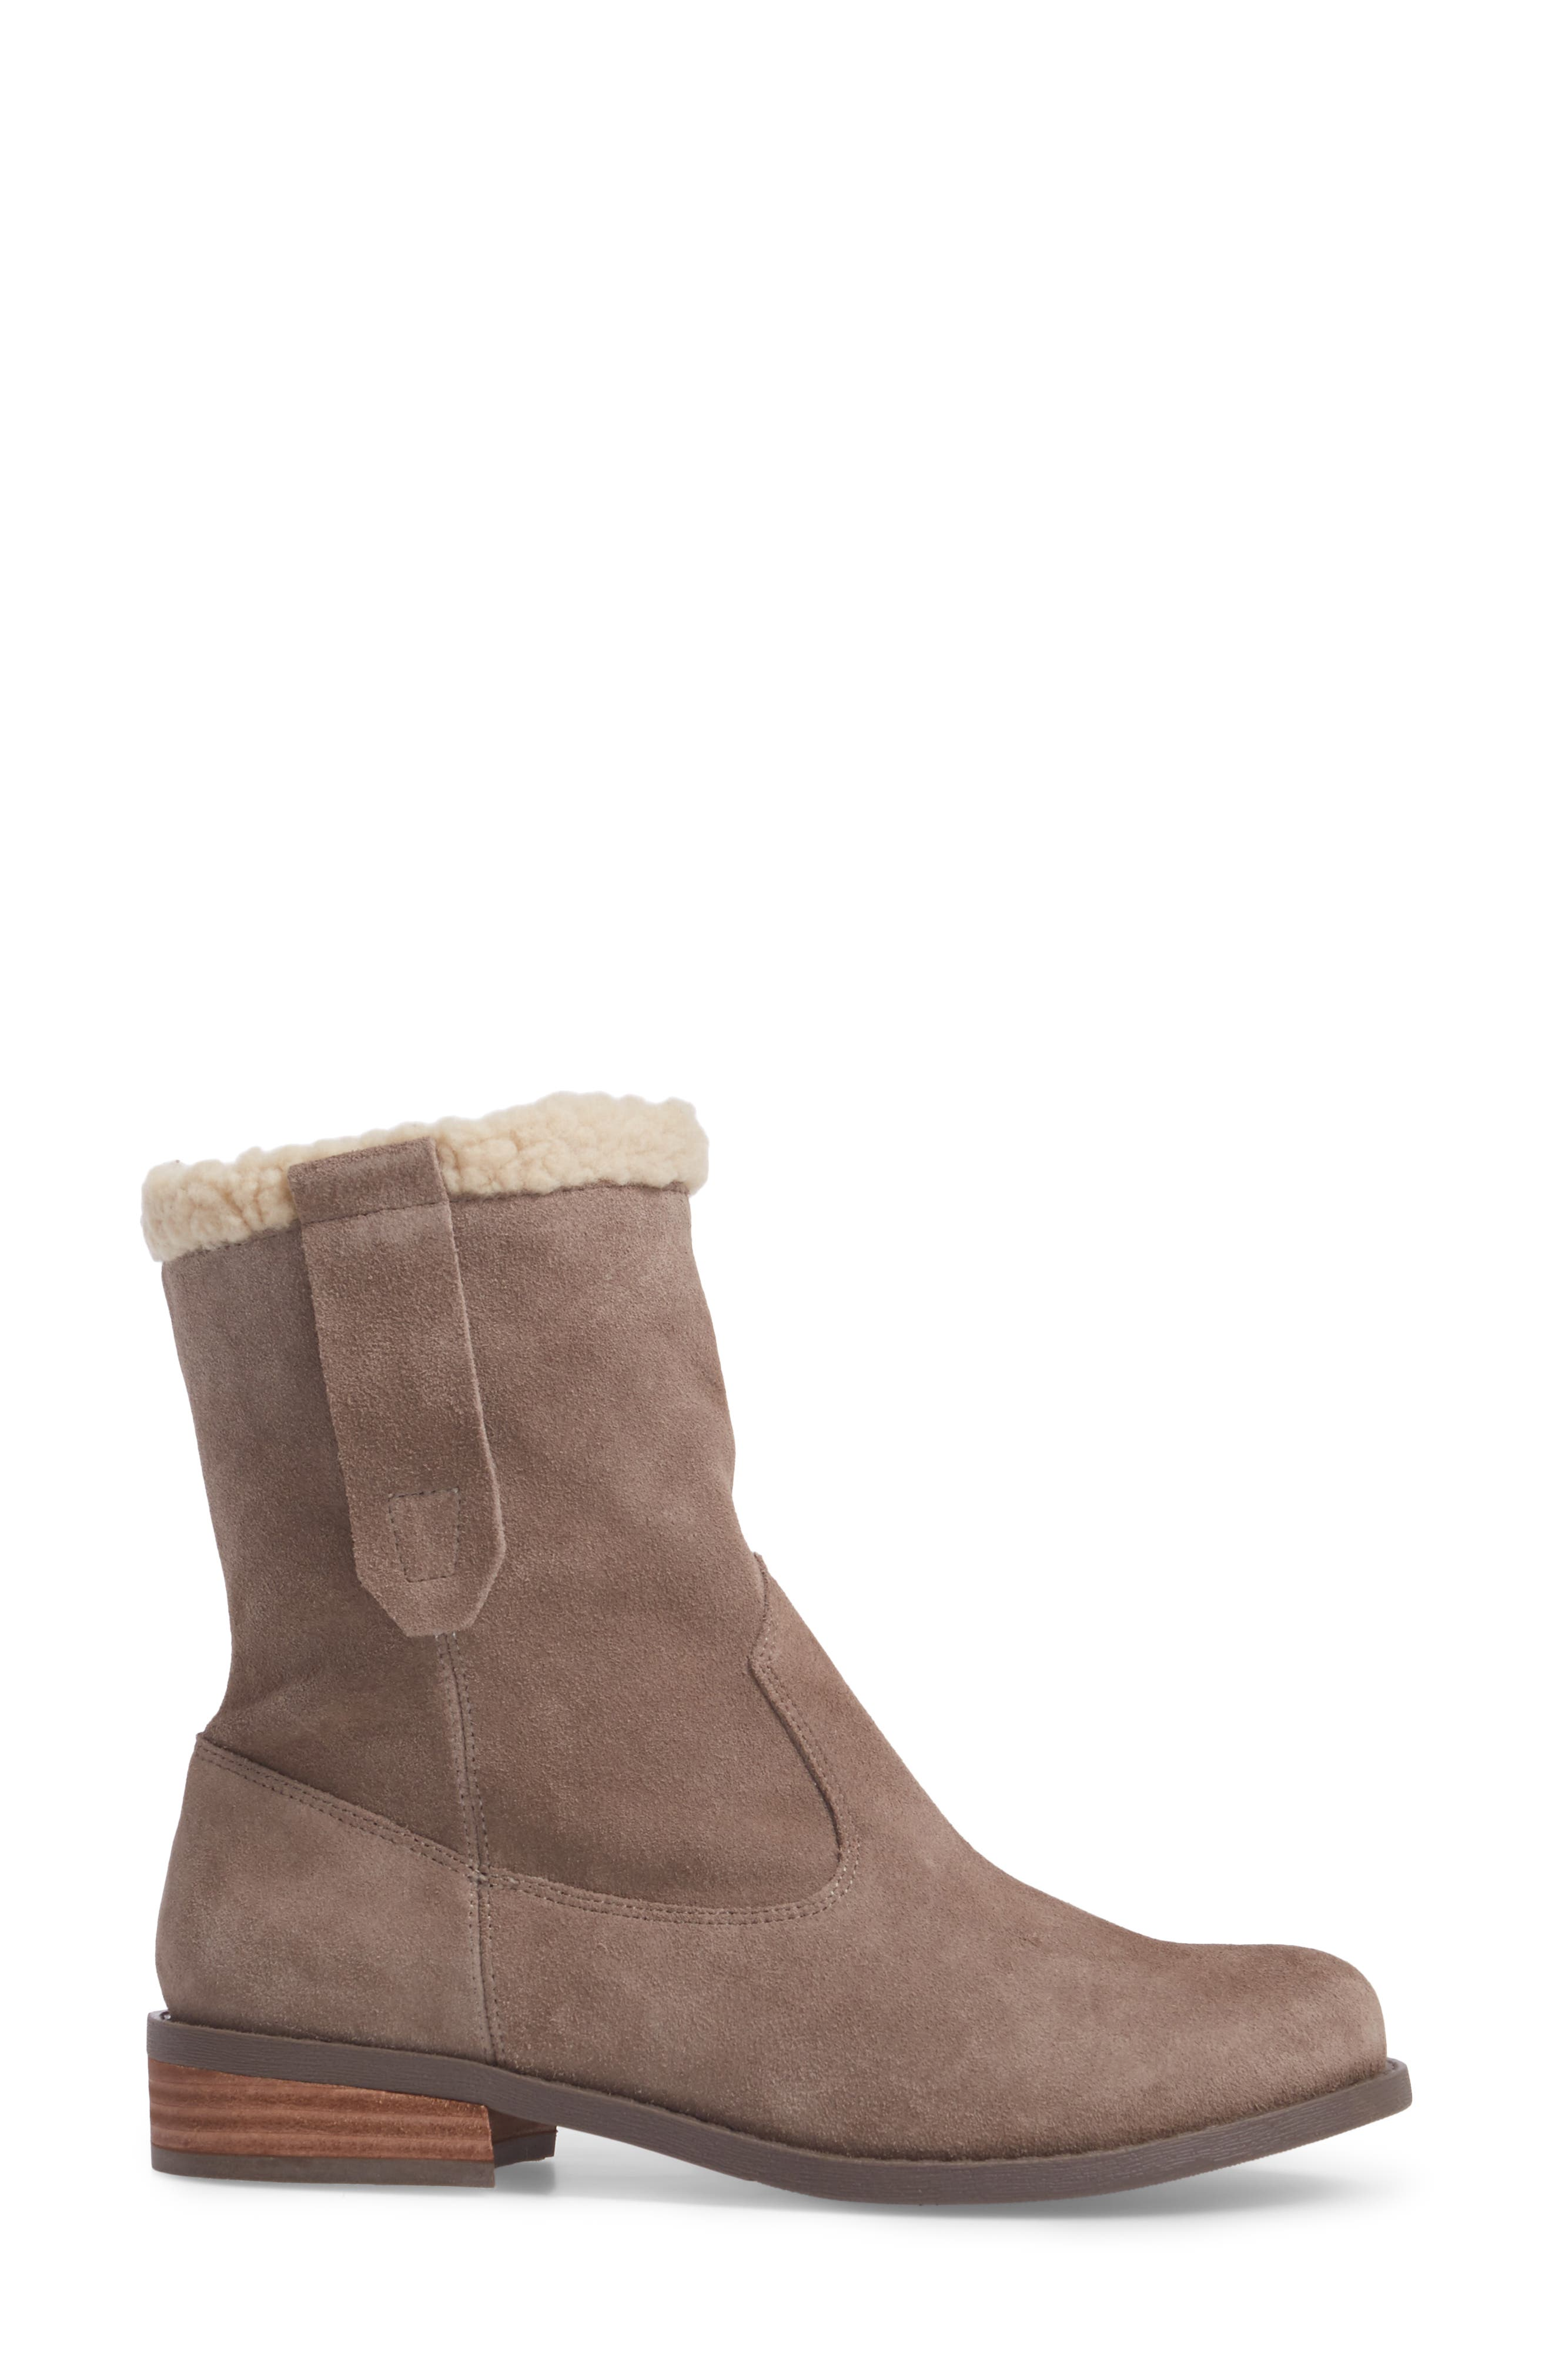 SOLE SOCIETY, Verona Faux Shearling Boot, Alternate thumbnail 3, color, DARK MUSHROOM SUEDE